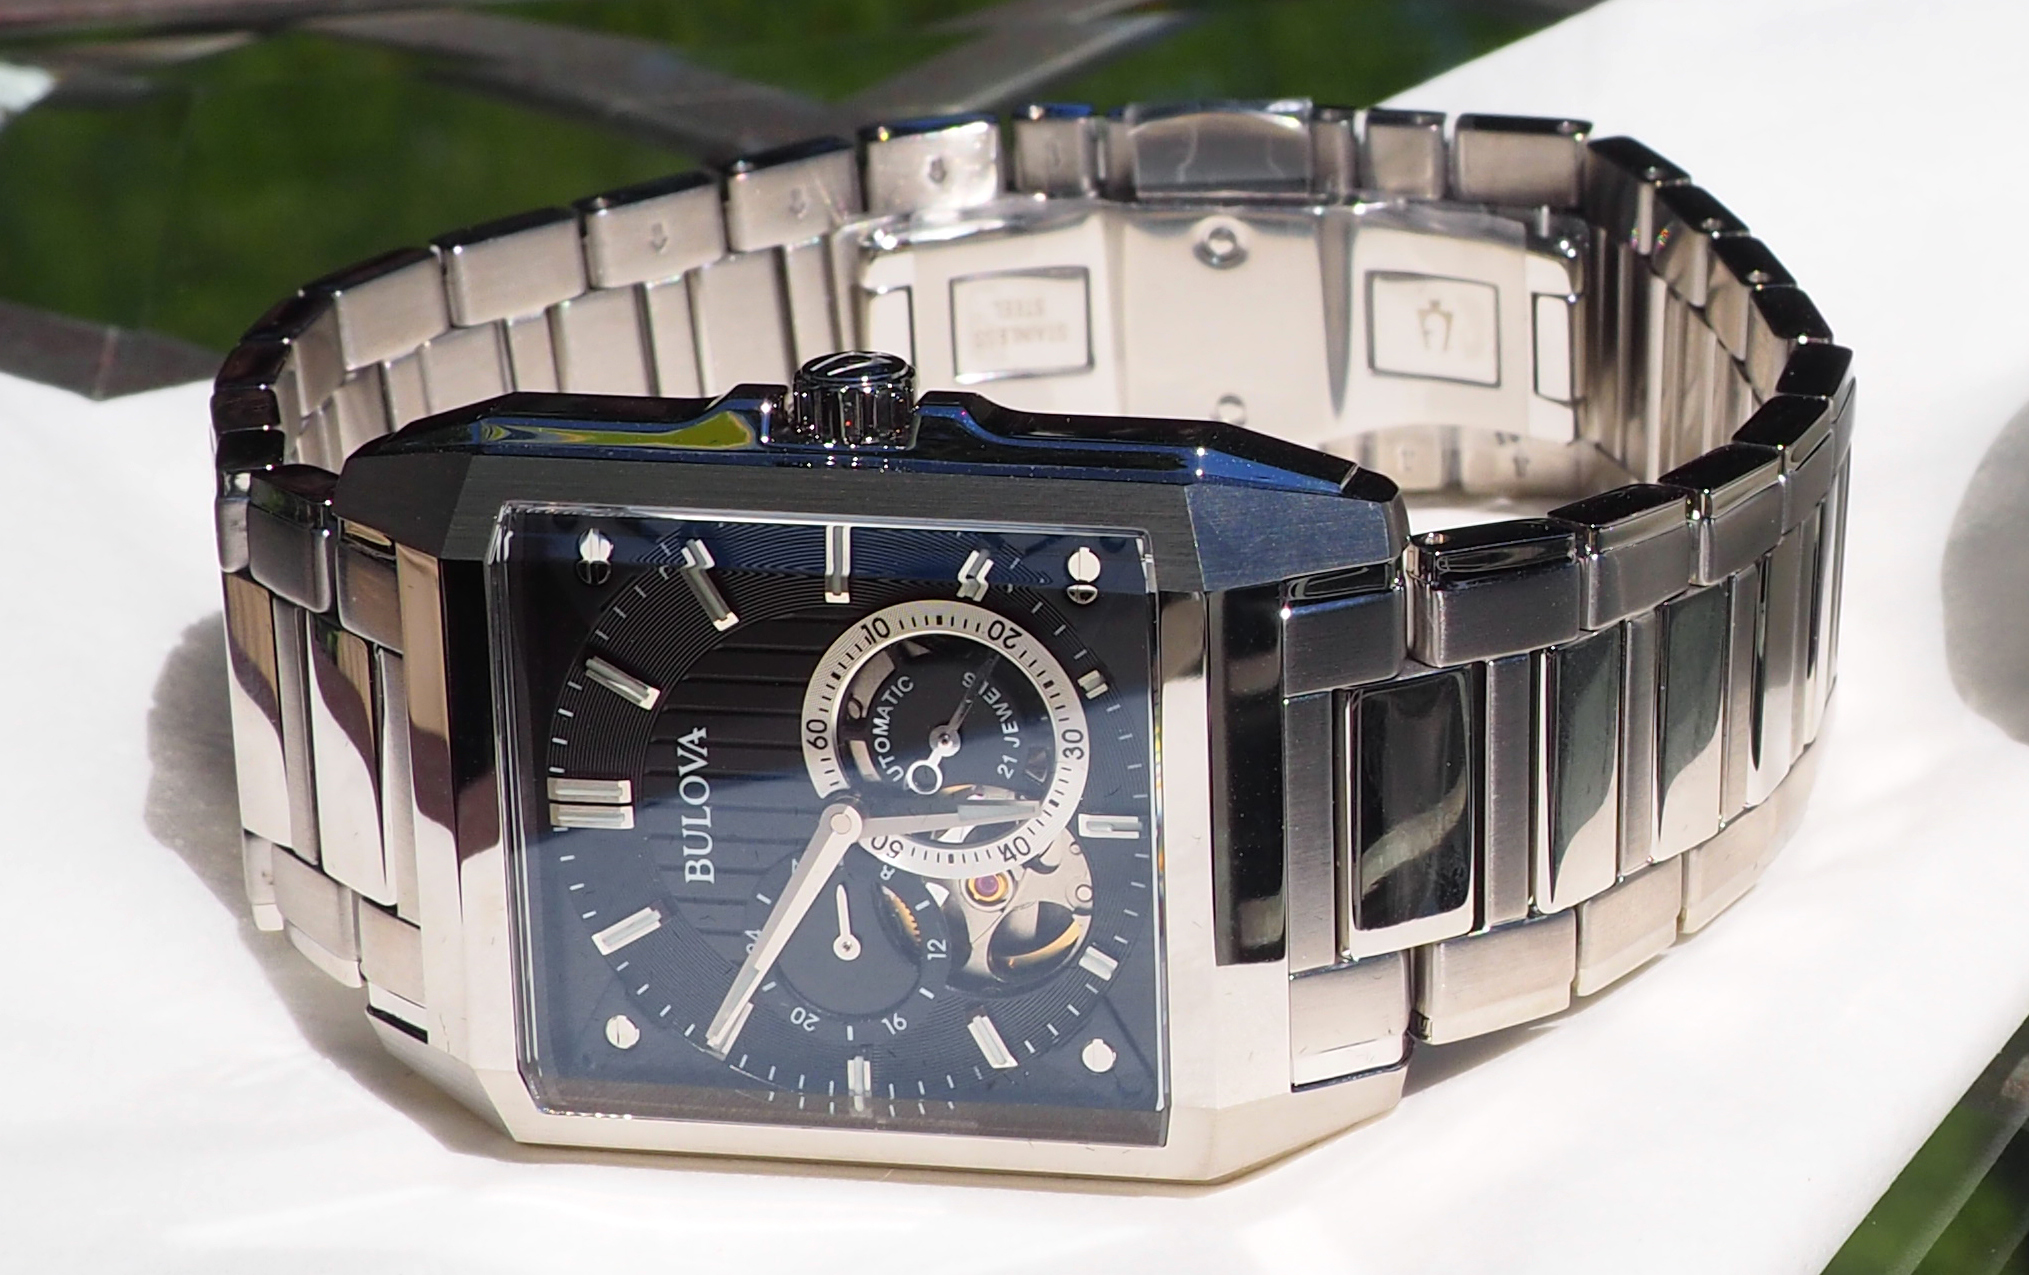 1f0193c67541 Bulova 96A194 Automatic Watch Review - WatchReviewBlog